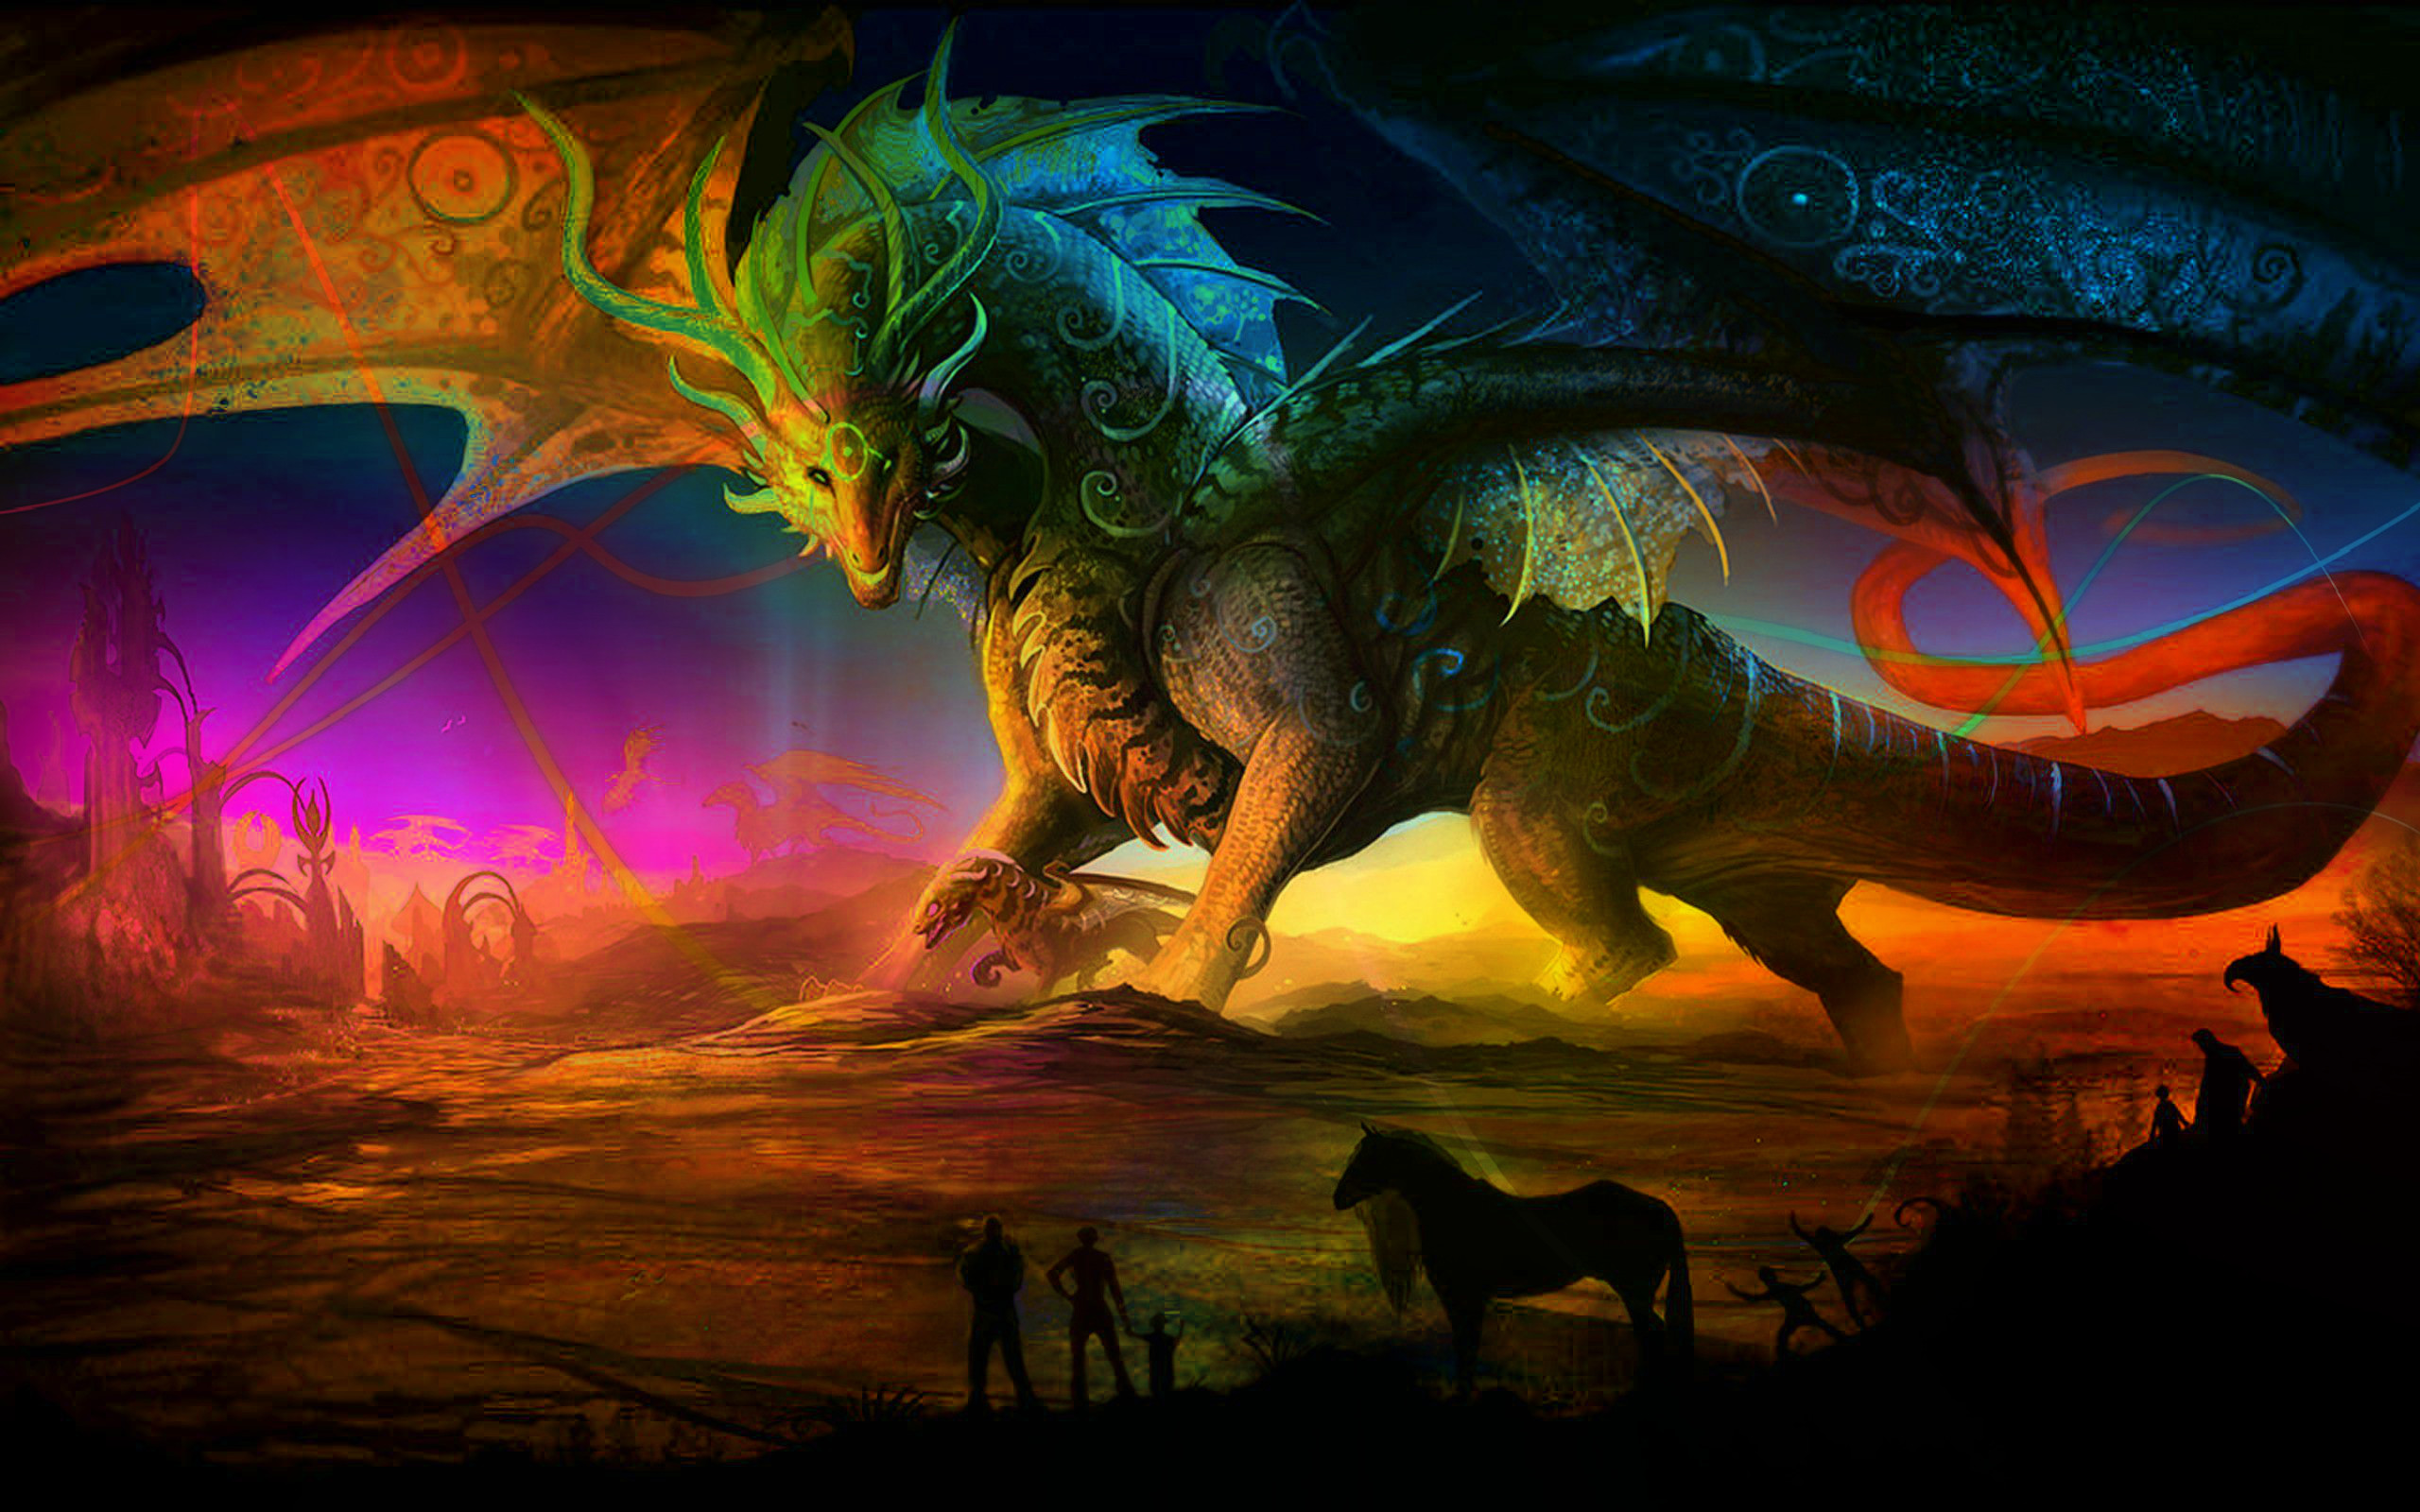 214 fantasy wallpapers castles sorcery dragons and maidens - Dragon wallpaper 3d ...